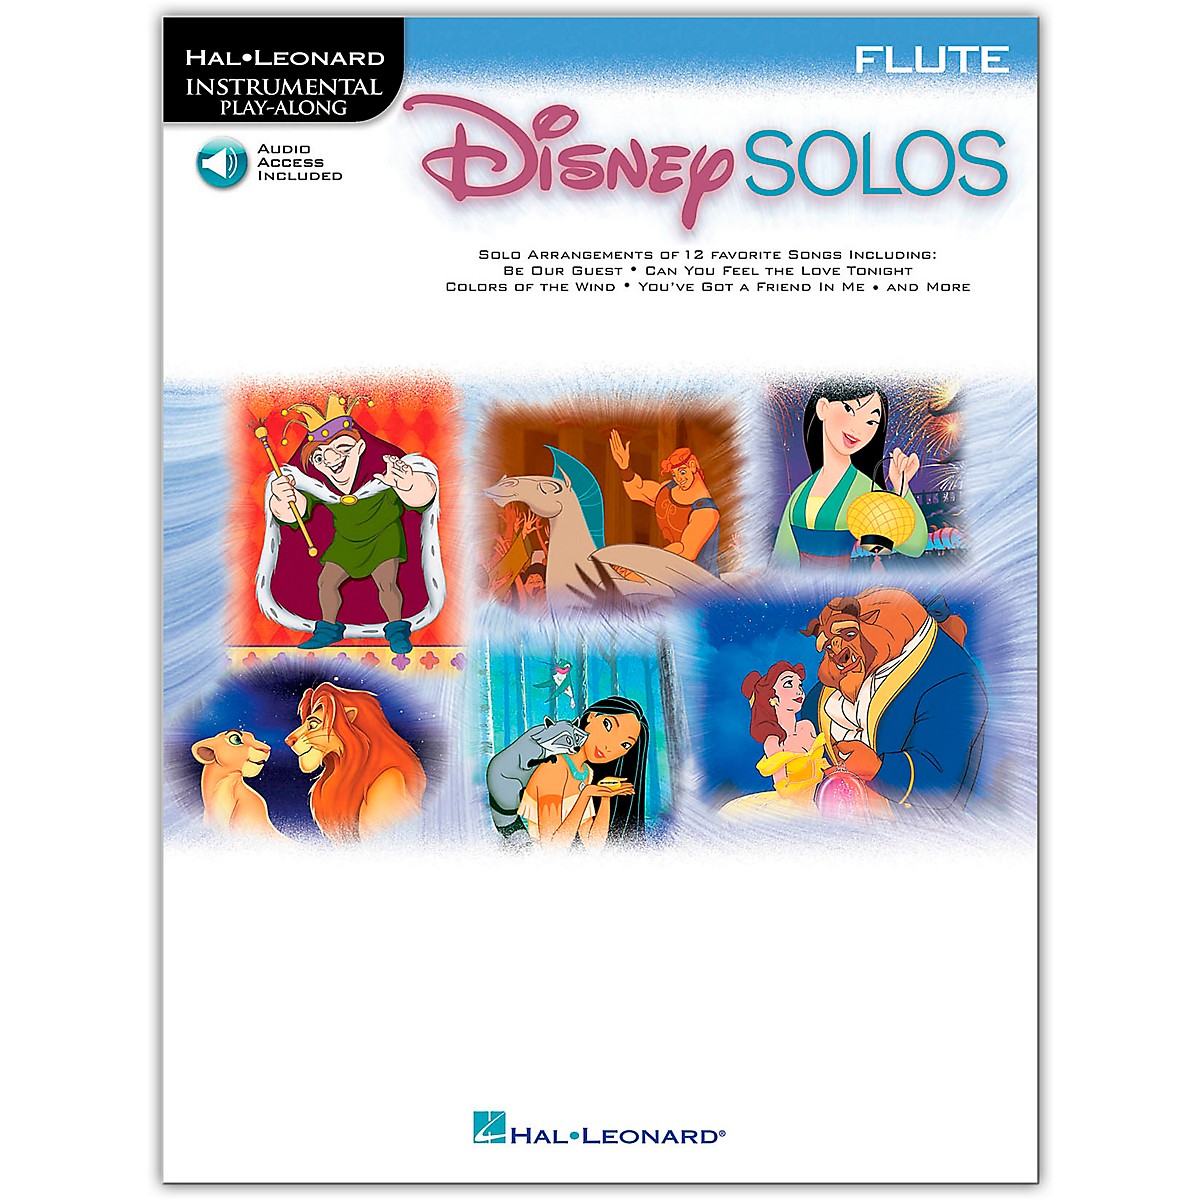 Hal Leonard Play-Along Disney Solos Book with Online Audio-Flute